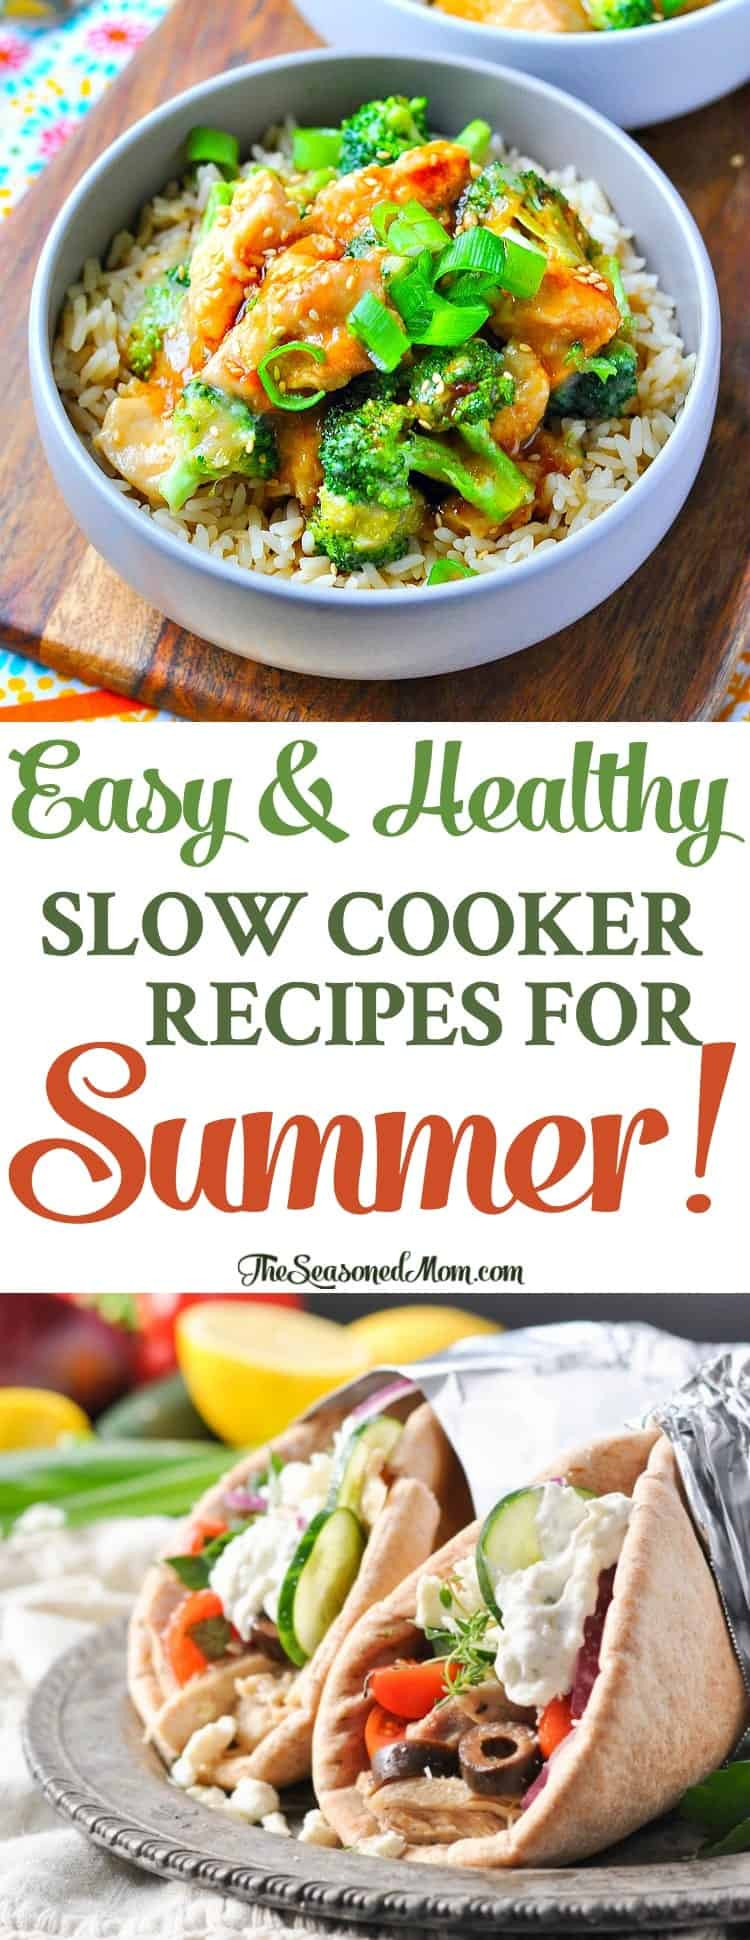 Easy Slow Cooker Recipes Healthy  Easy Healthy Slow Cooker Recipes for Summer The